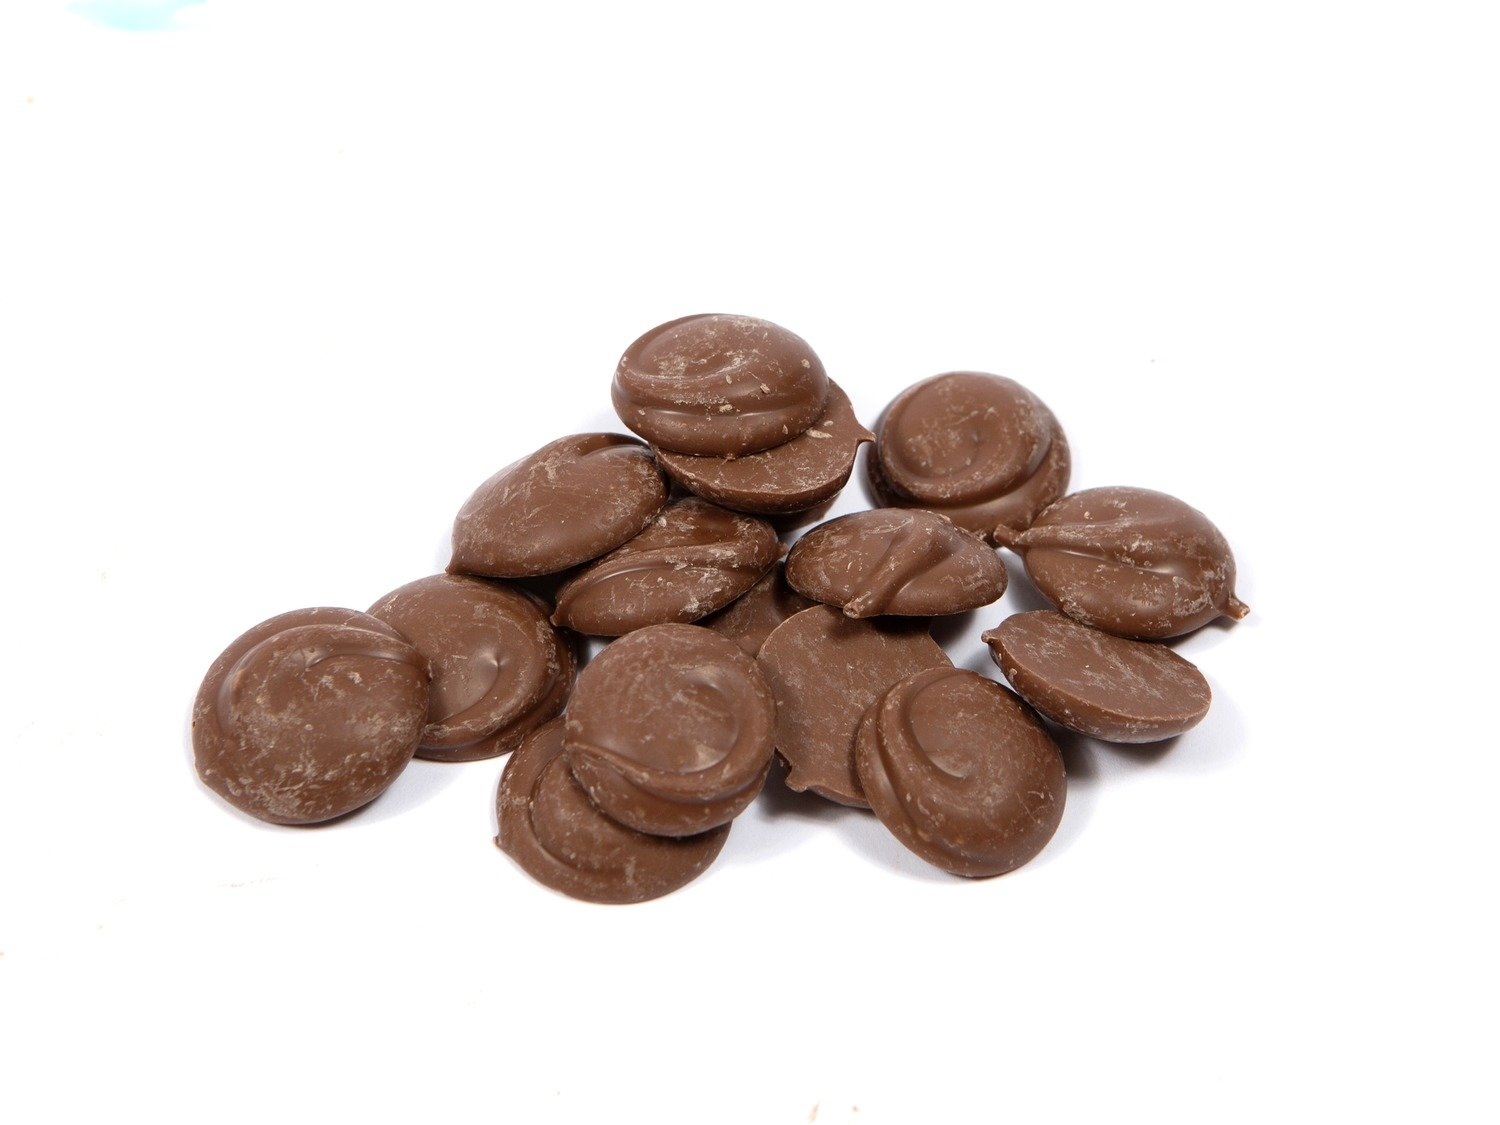 36% Milk Chocolate Disks